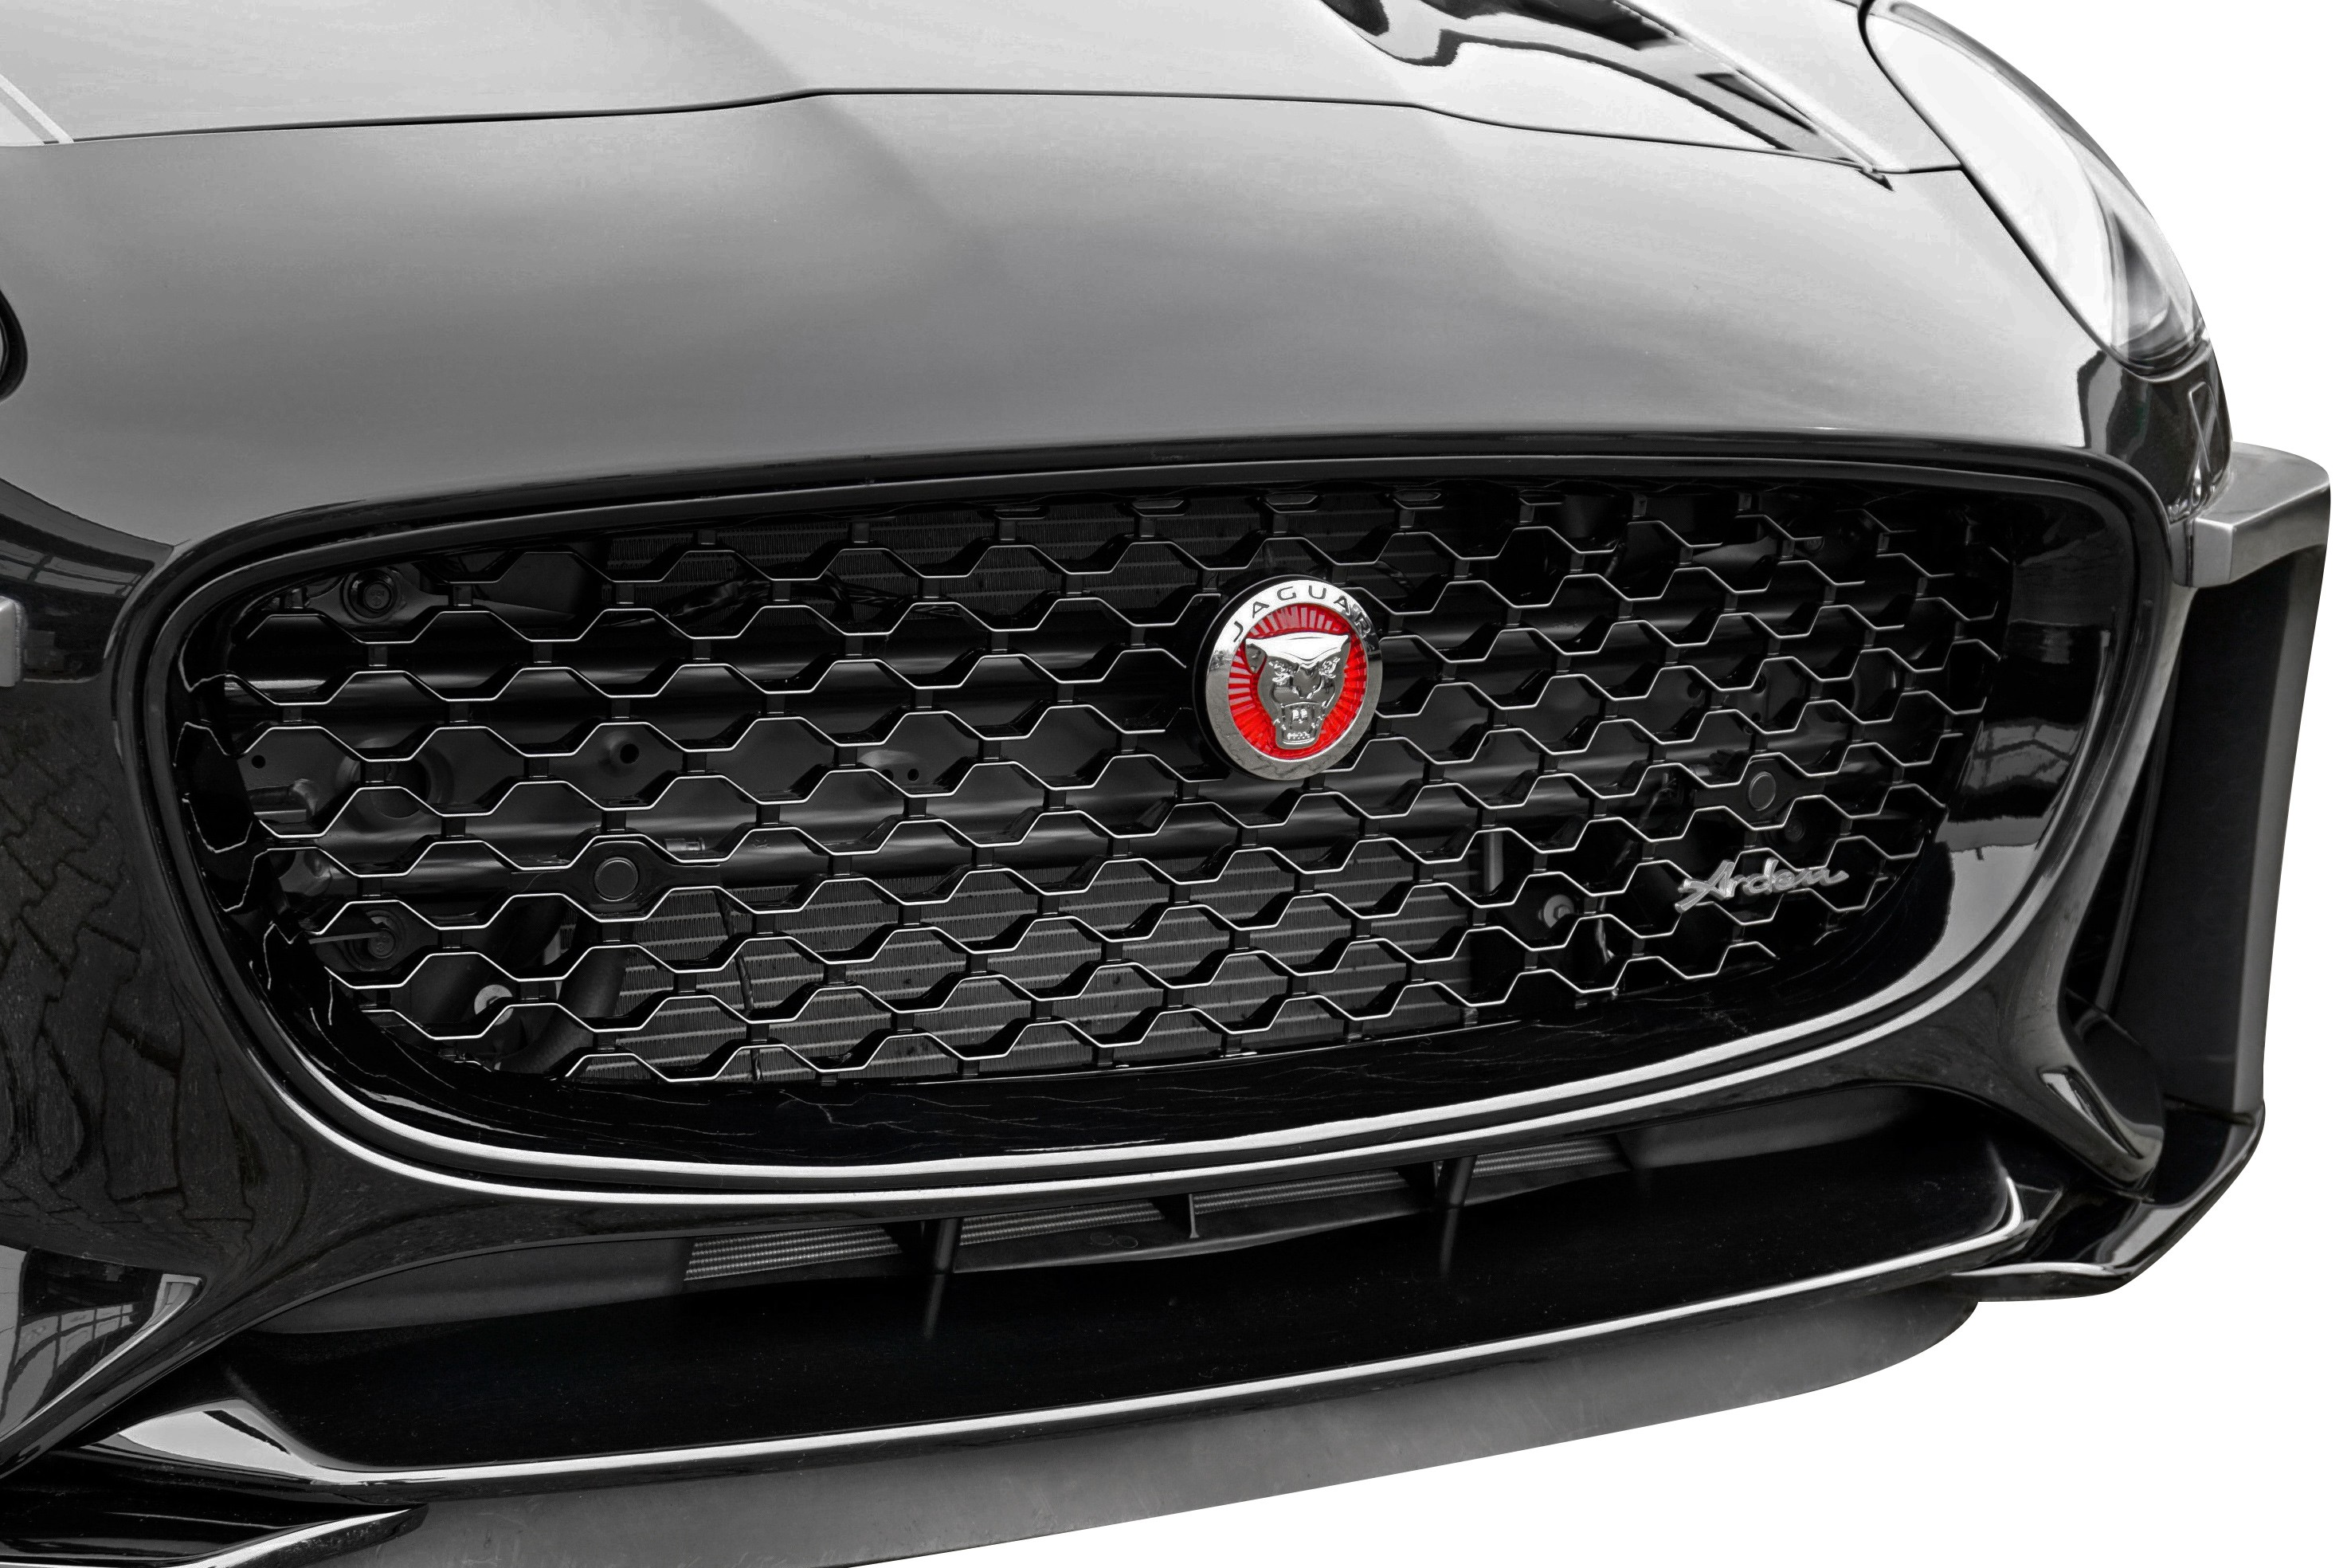 Arden Radiator Grille for Jaguar F-Type and F-Type SVR